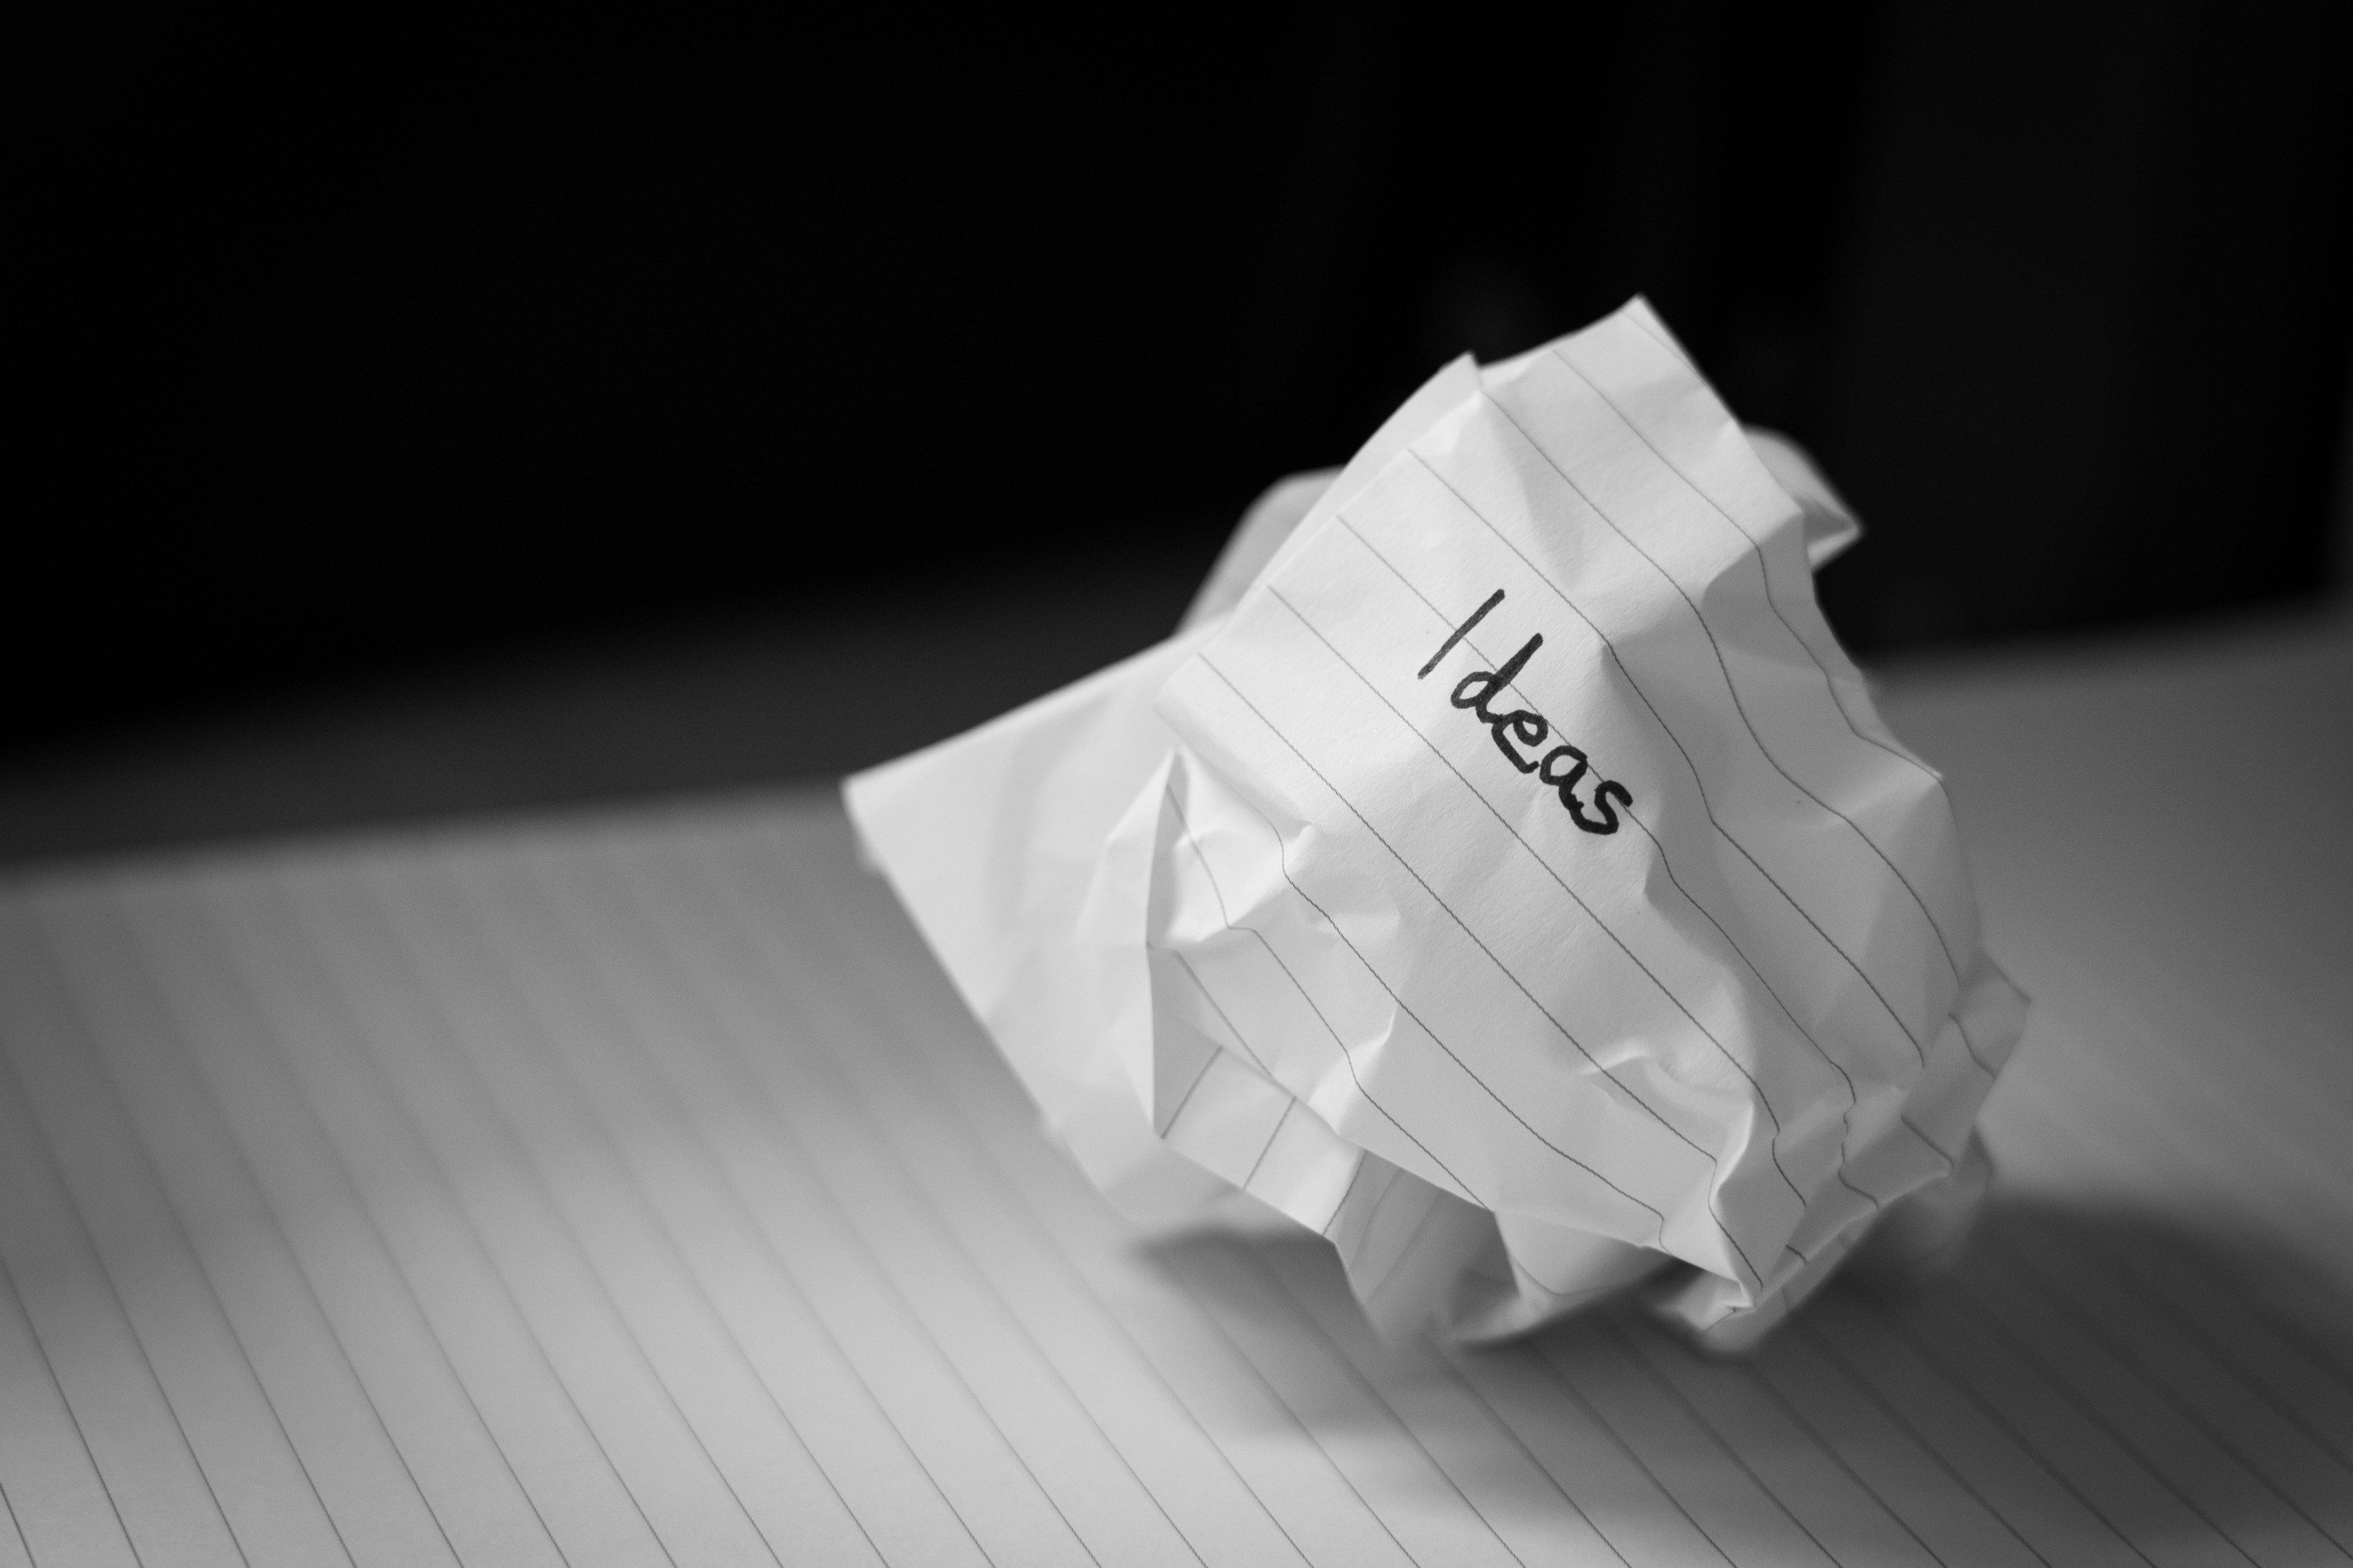 Crumpled paper with the word 'ideas' written on it showing thoughts create actions and they in turn solidify those thoughts